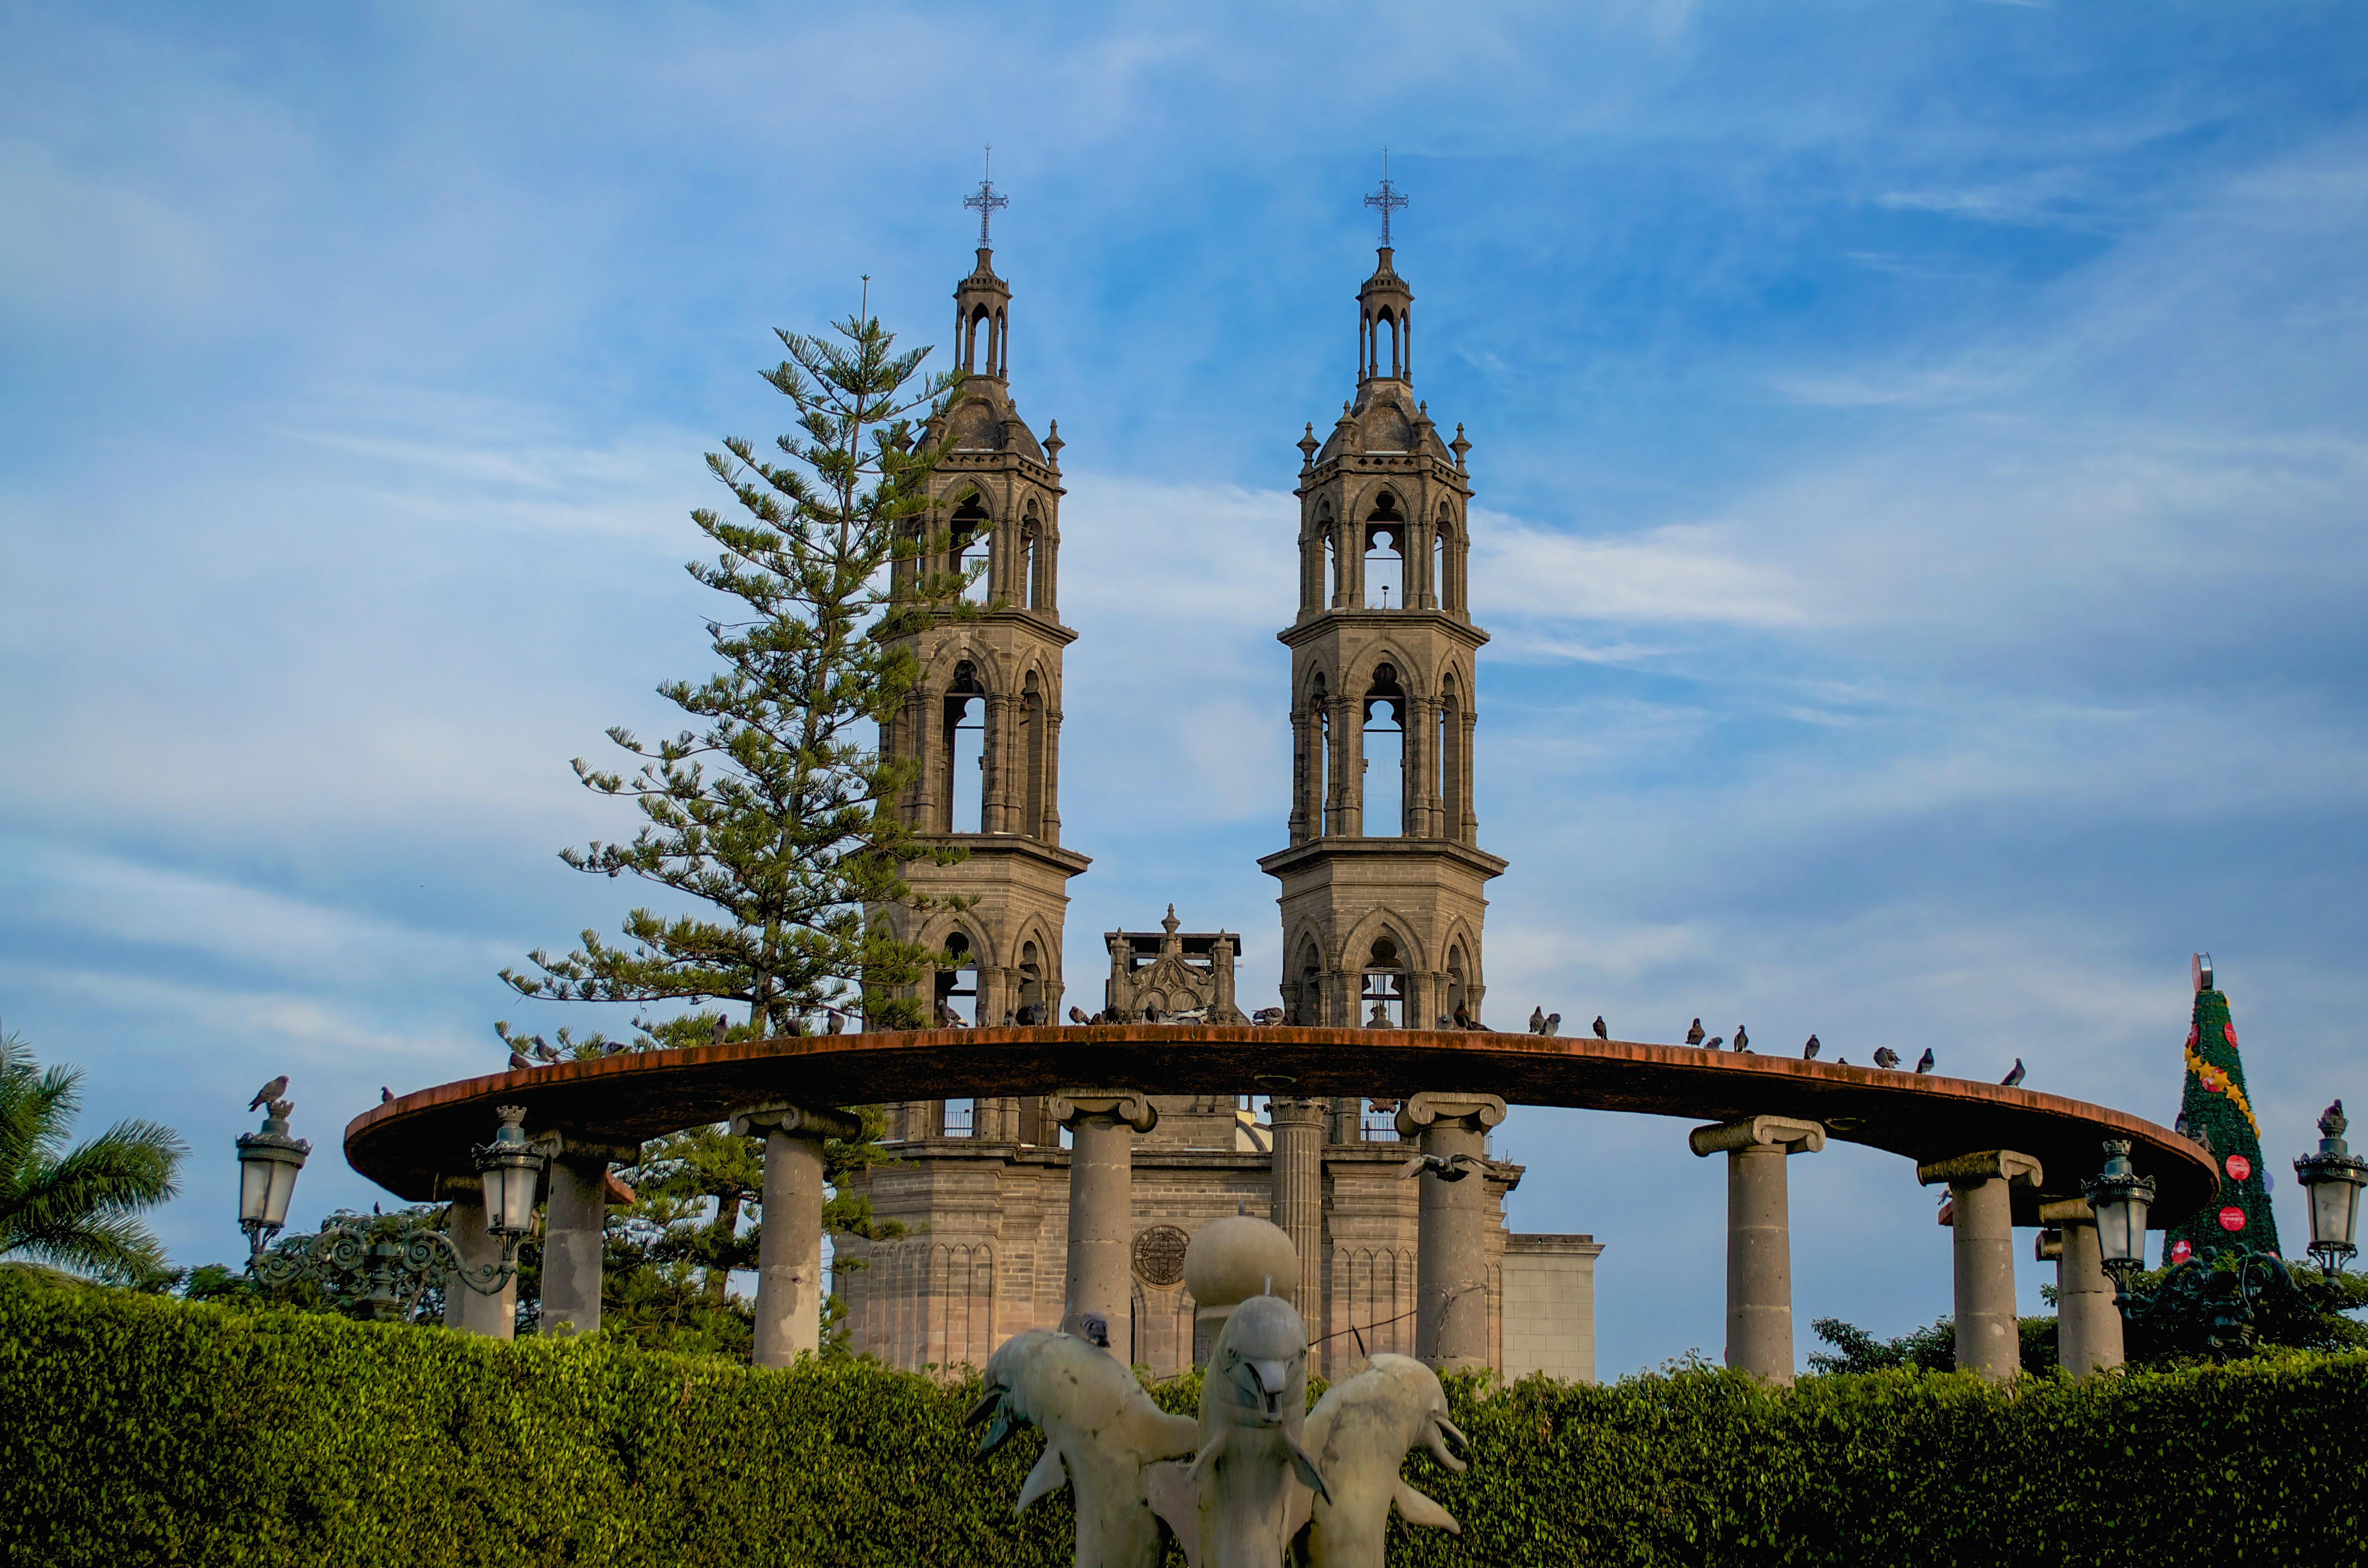 tepic guys Find cheap flights to more than 65 cities in mexico, united states, costa rica, guatemala, el salvador and nicaragua the airfare that excludes all the fees you might don't need, and you so.